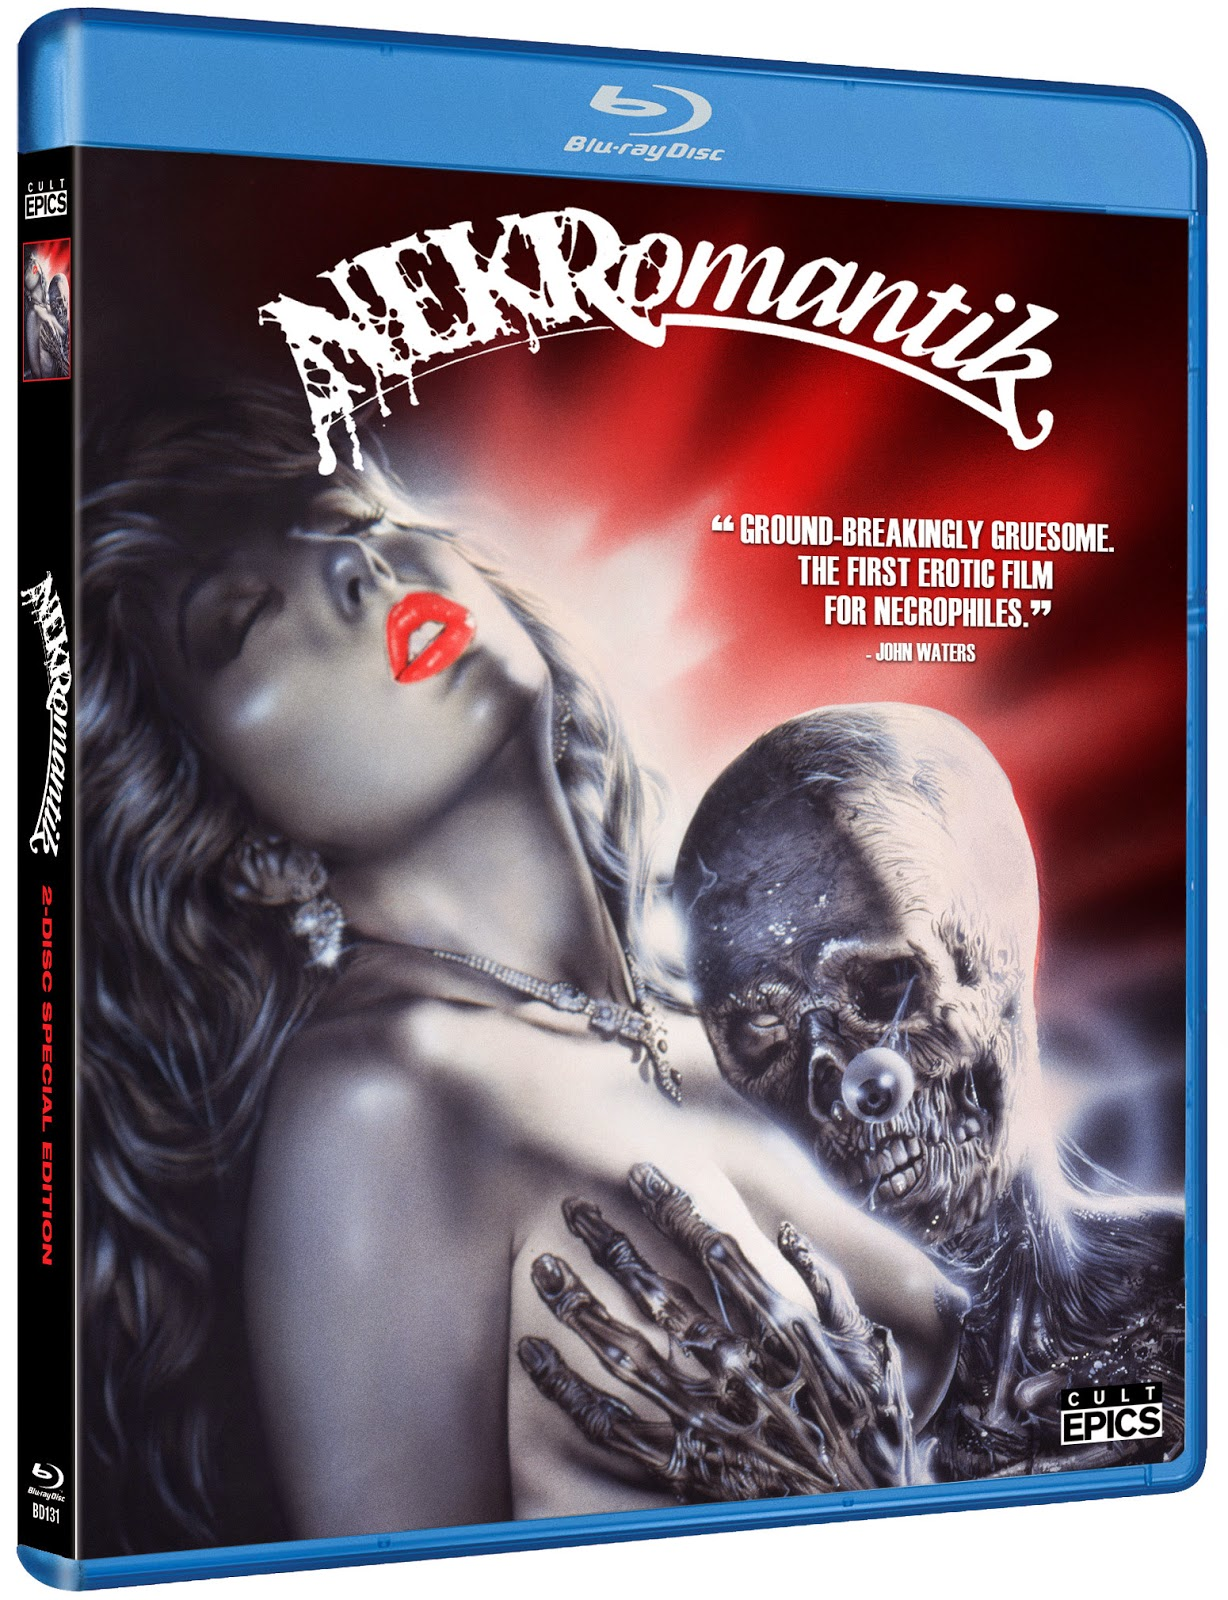 http://www.diabolikdvd.com/category/Horror-%5Bsl%5D-Thriller/Nekromantik-(Cult-Epics-Limited-Edition)-(Blu~Ray).html